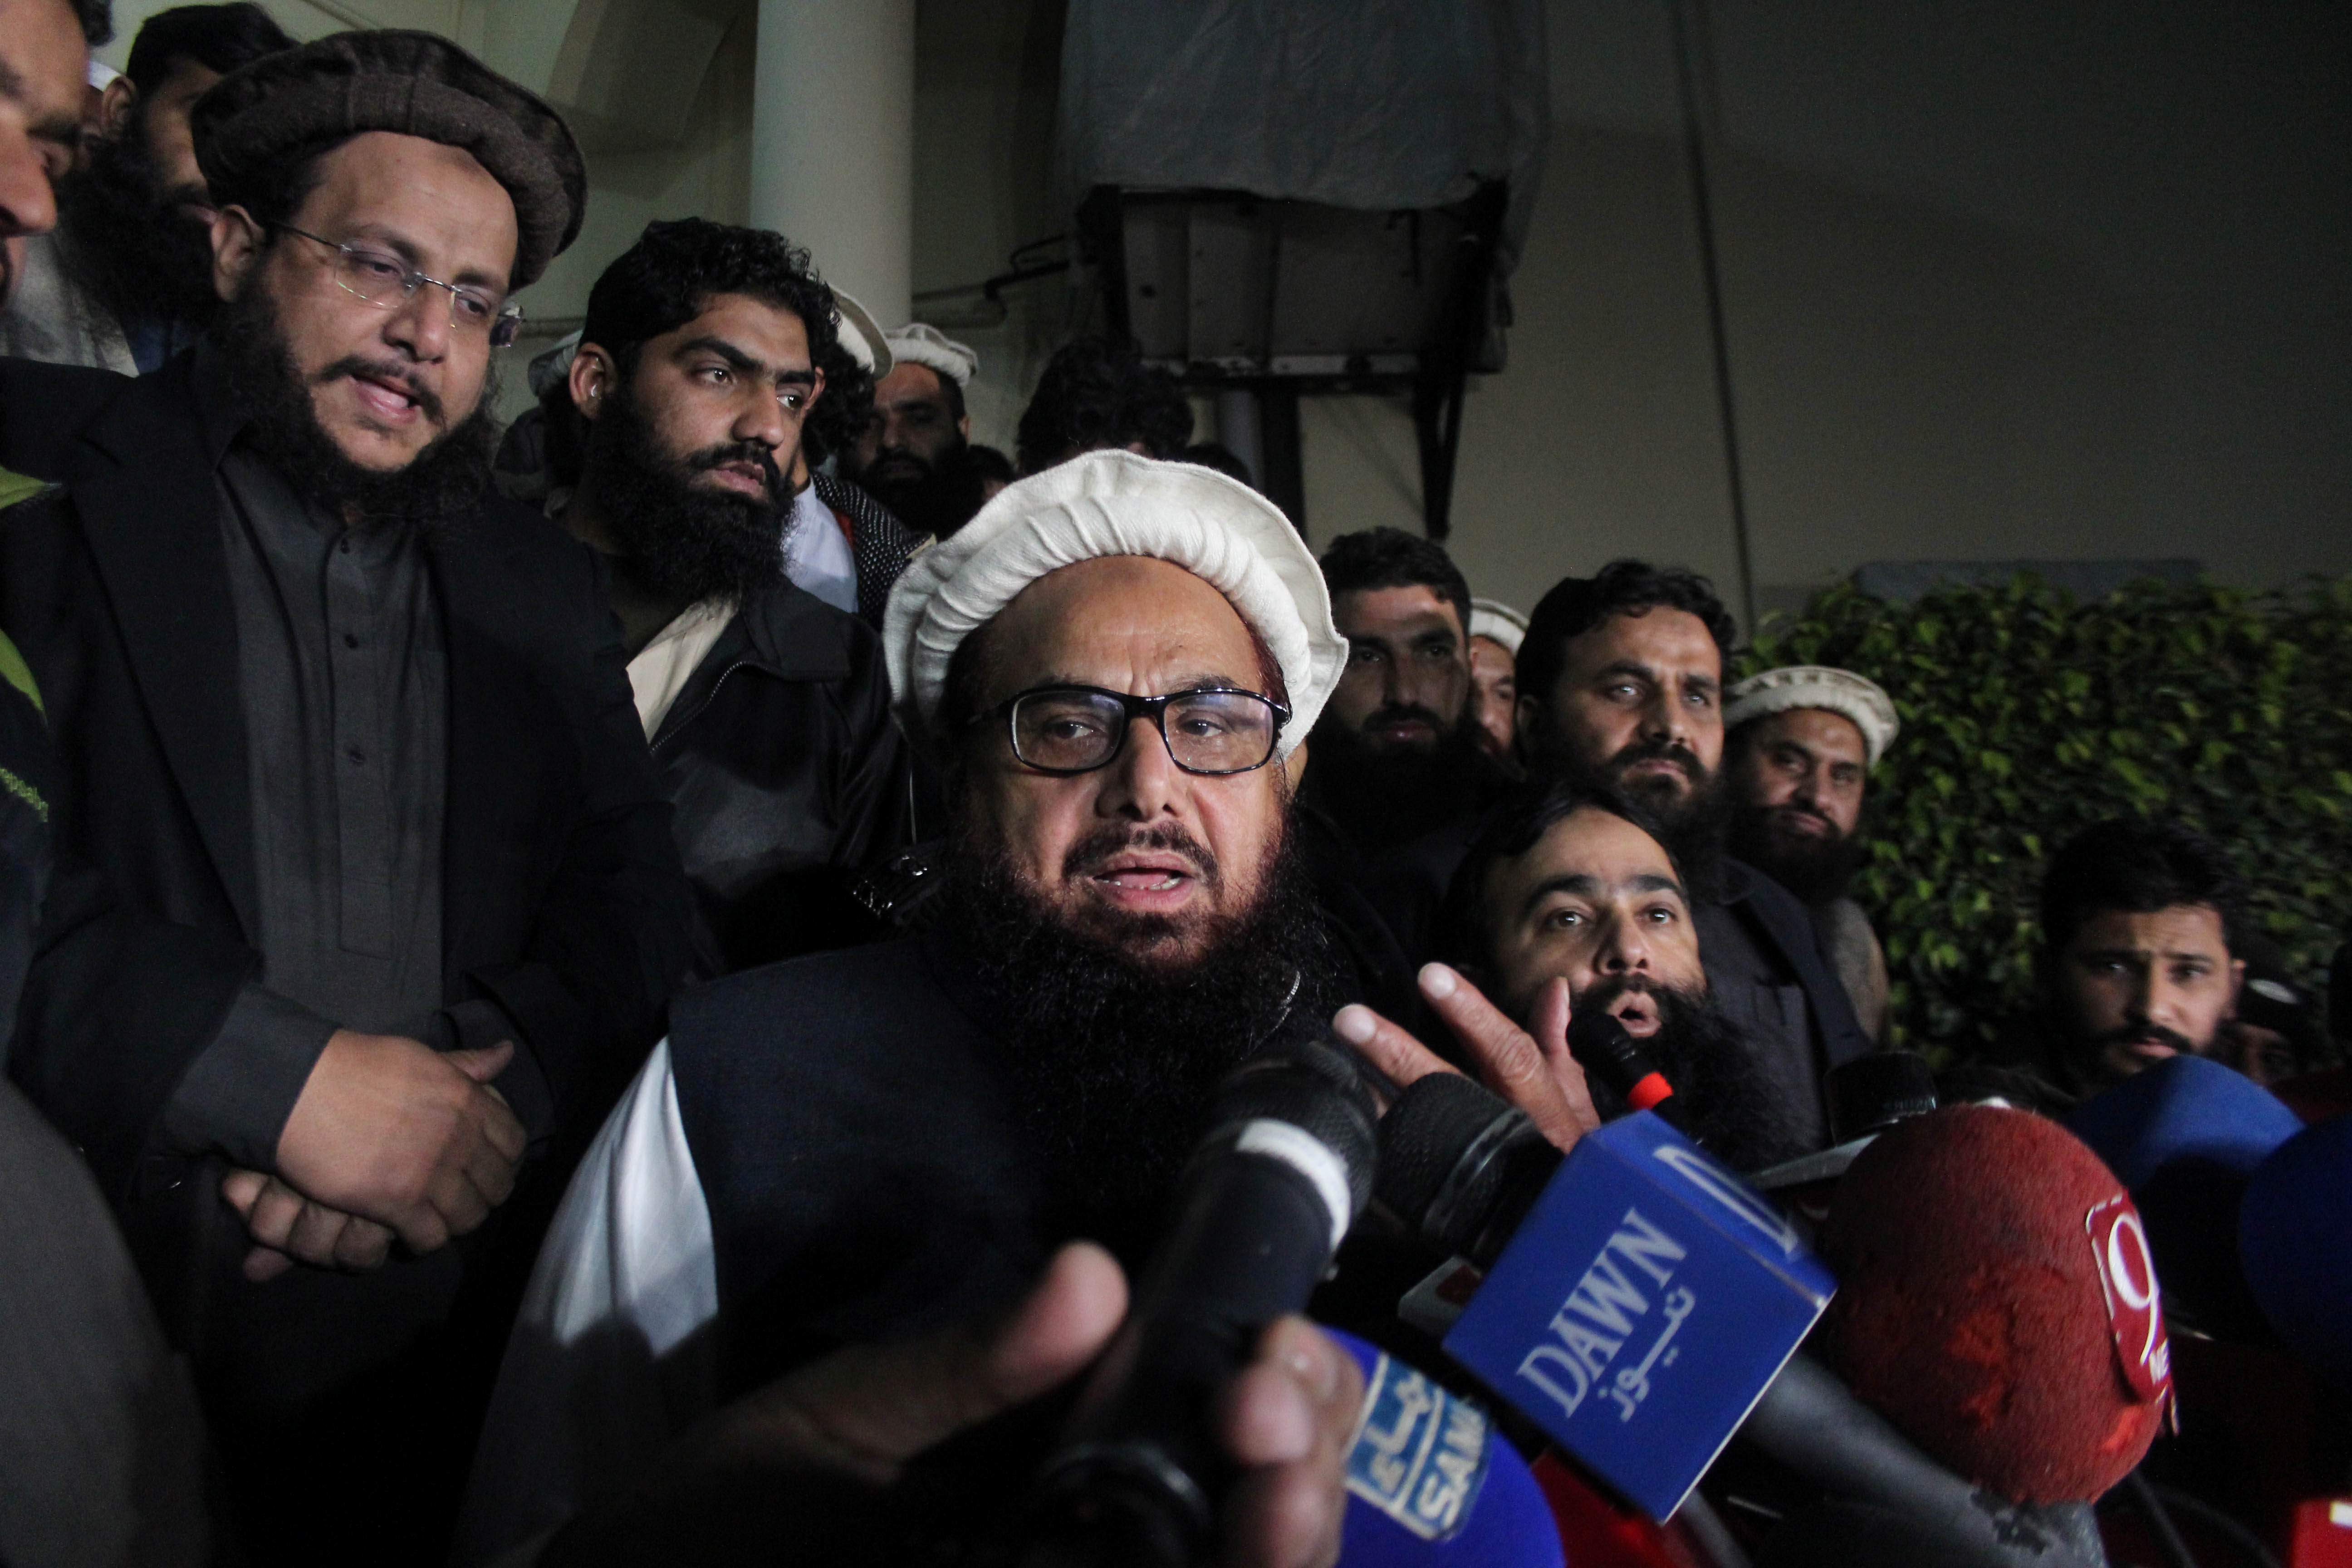 Hafiz Muhammad Saeed, chief of Jamat-ud-Dawa, speaks with media as he is escorted to his home where he will be under house arrest in Lahore, Pakistan on Jan. 30, 2017.